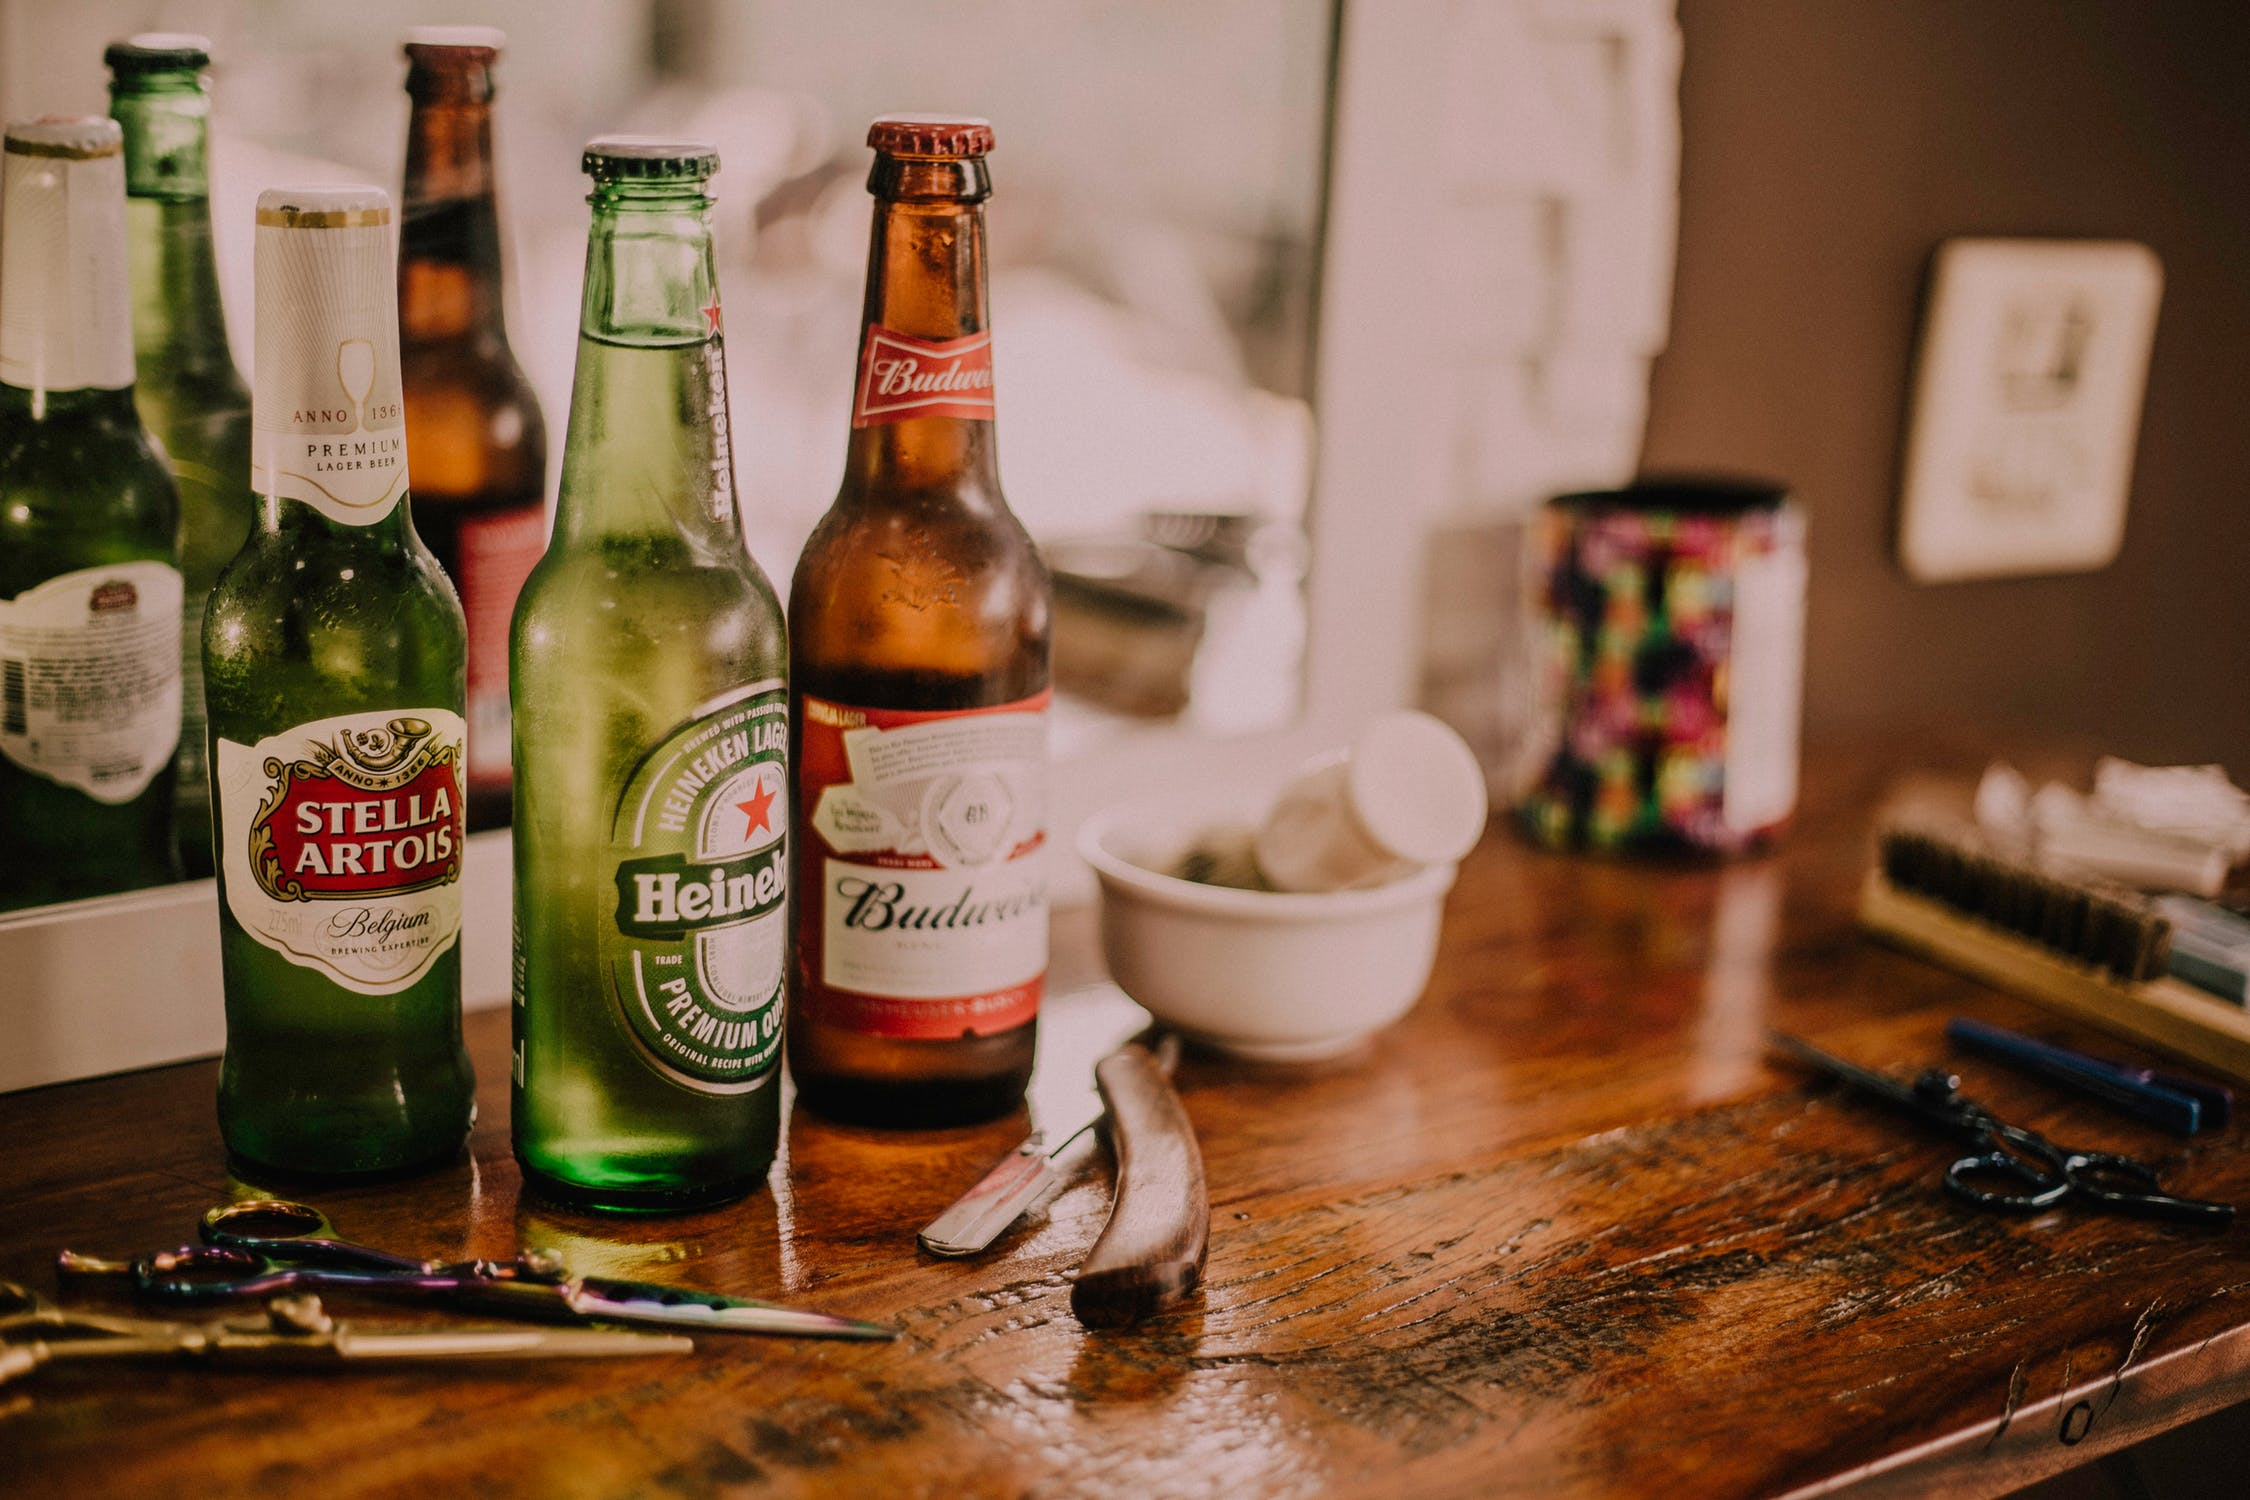 Оригинал: https://www.pexels.com/ru-ru/photo/heineken-667986/